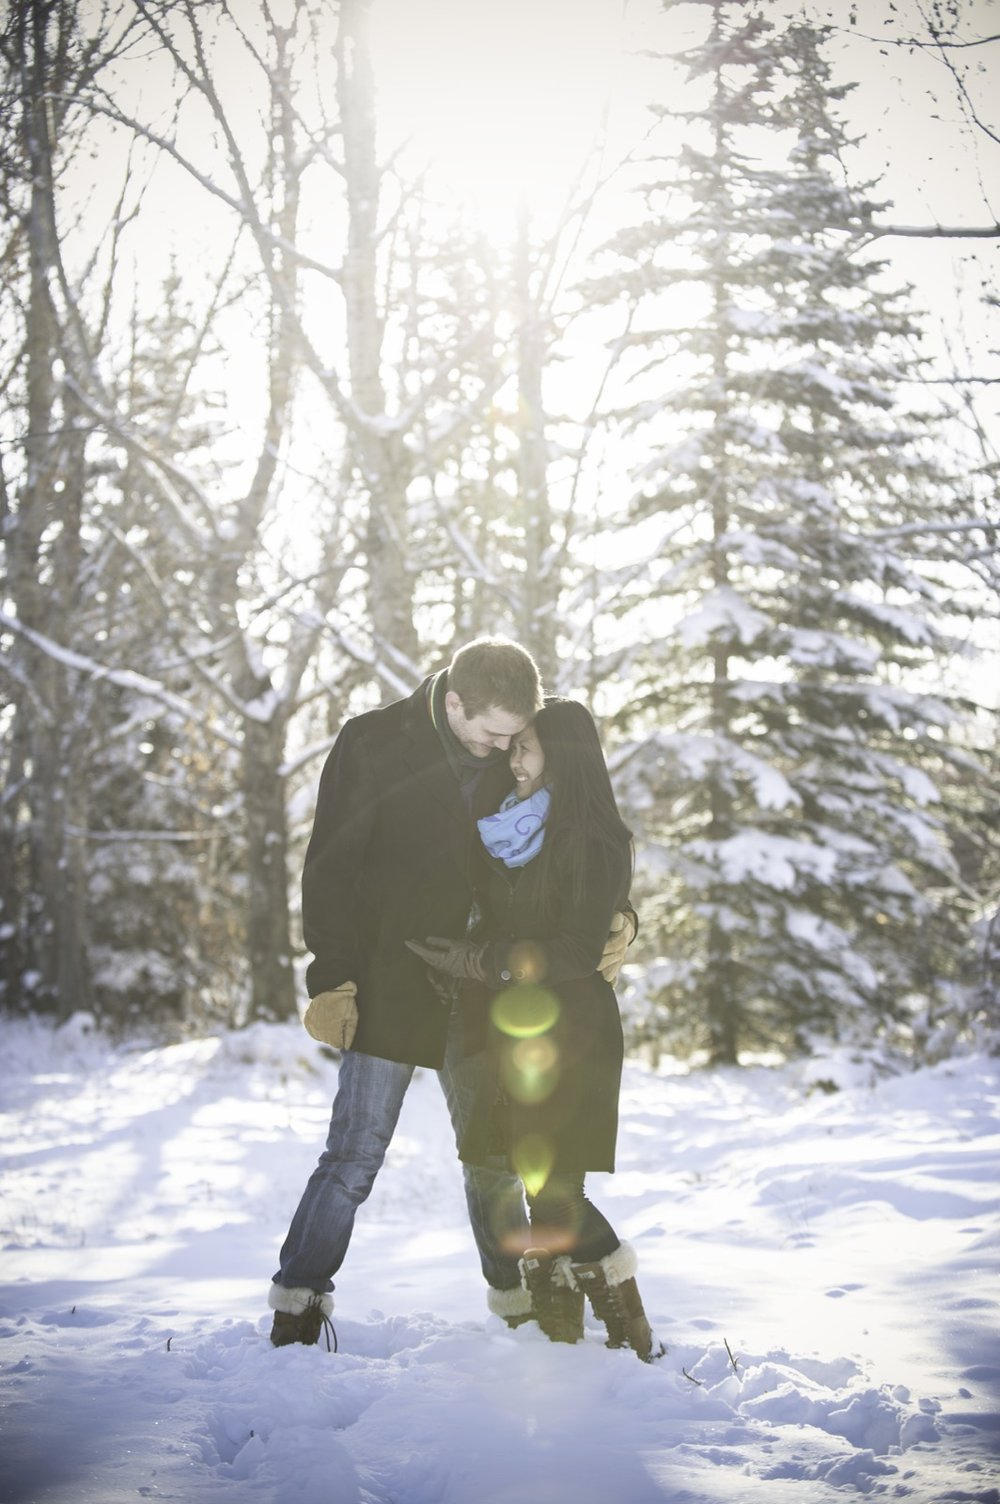 victoria-wedding-photographers-calgary-winter-engagement-proposal-28.jpg